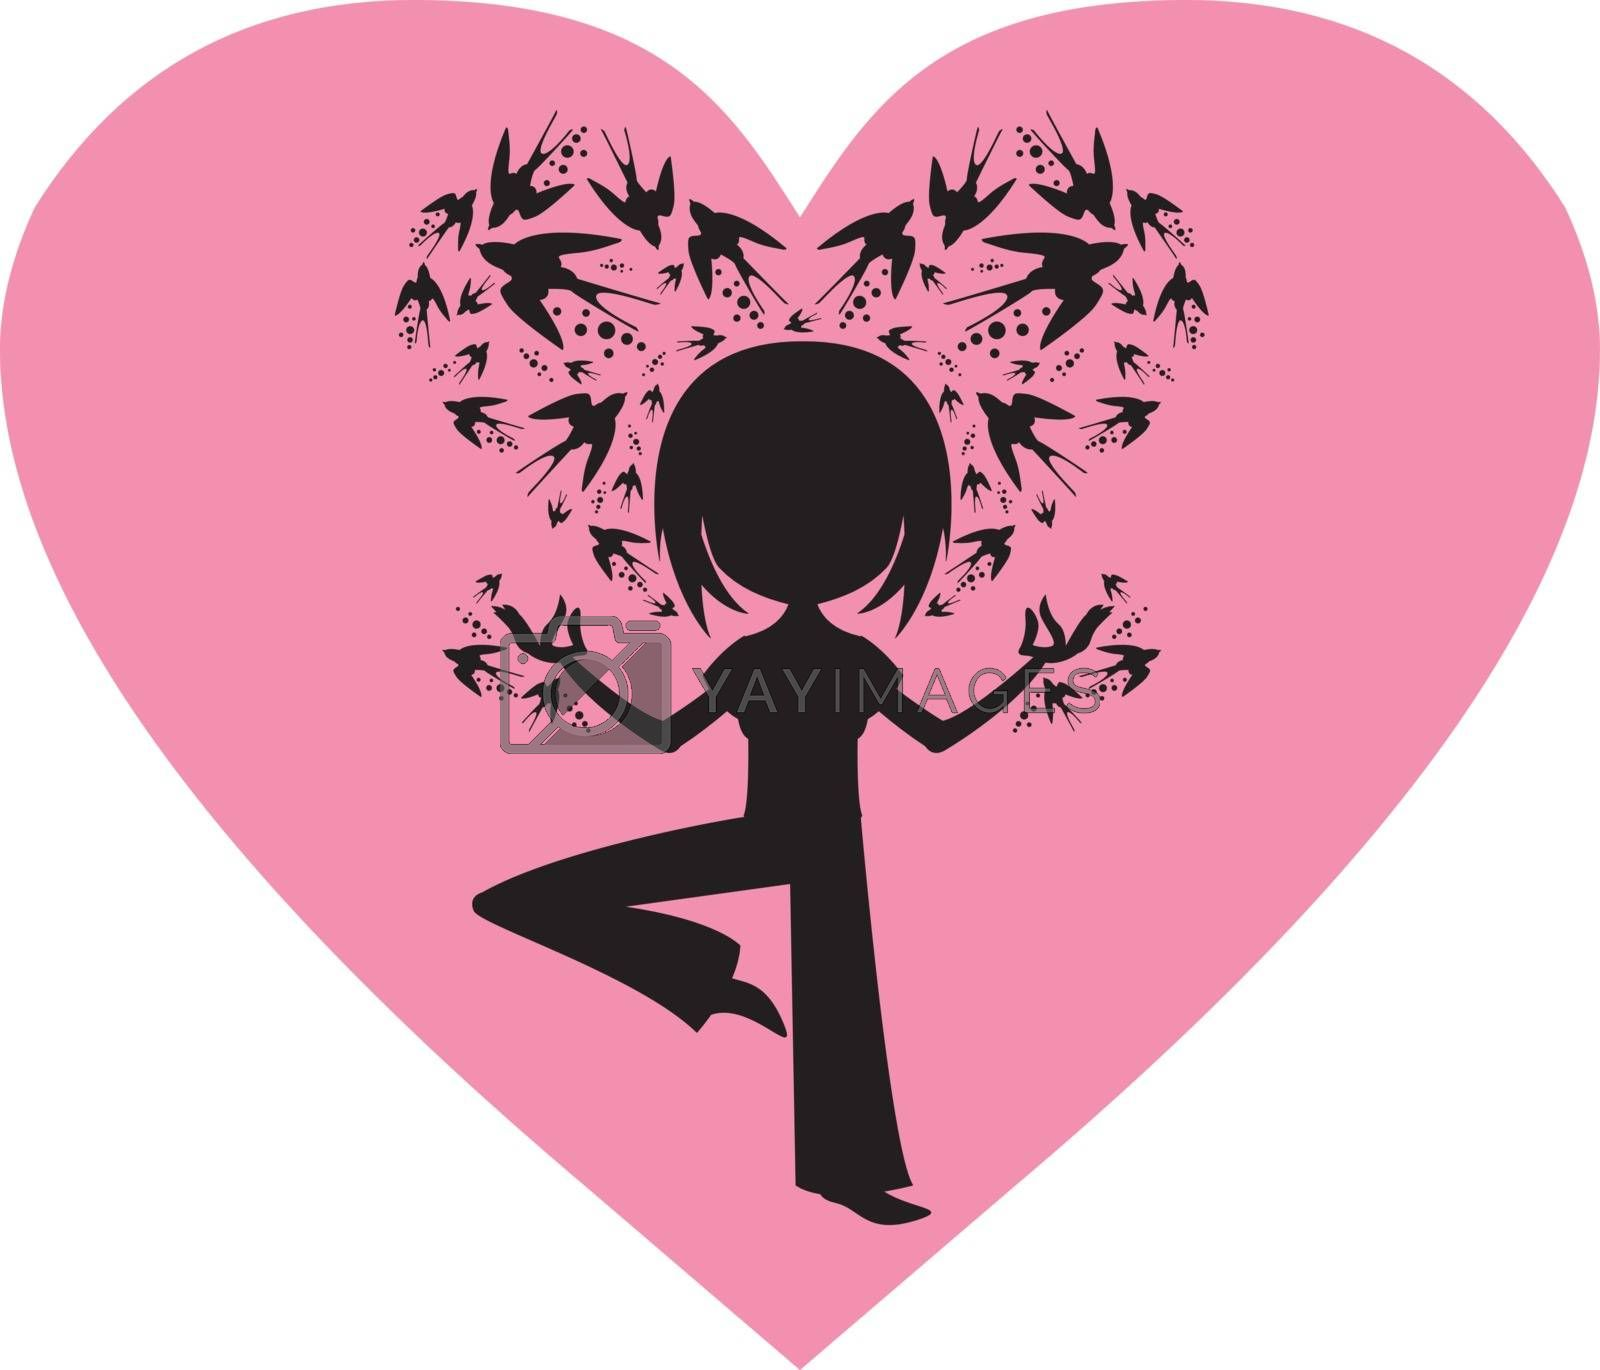 Cute Cartoon Yoga Girl with Swallows in Silhouette on a Valentine Heart Illustration by Mark Murphy Creative